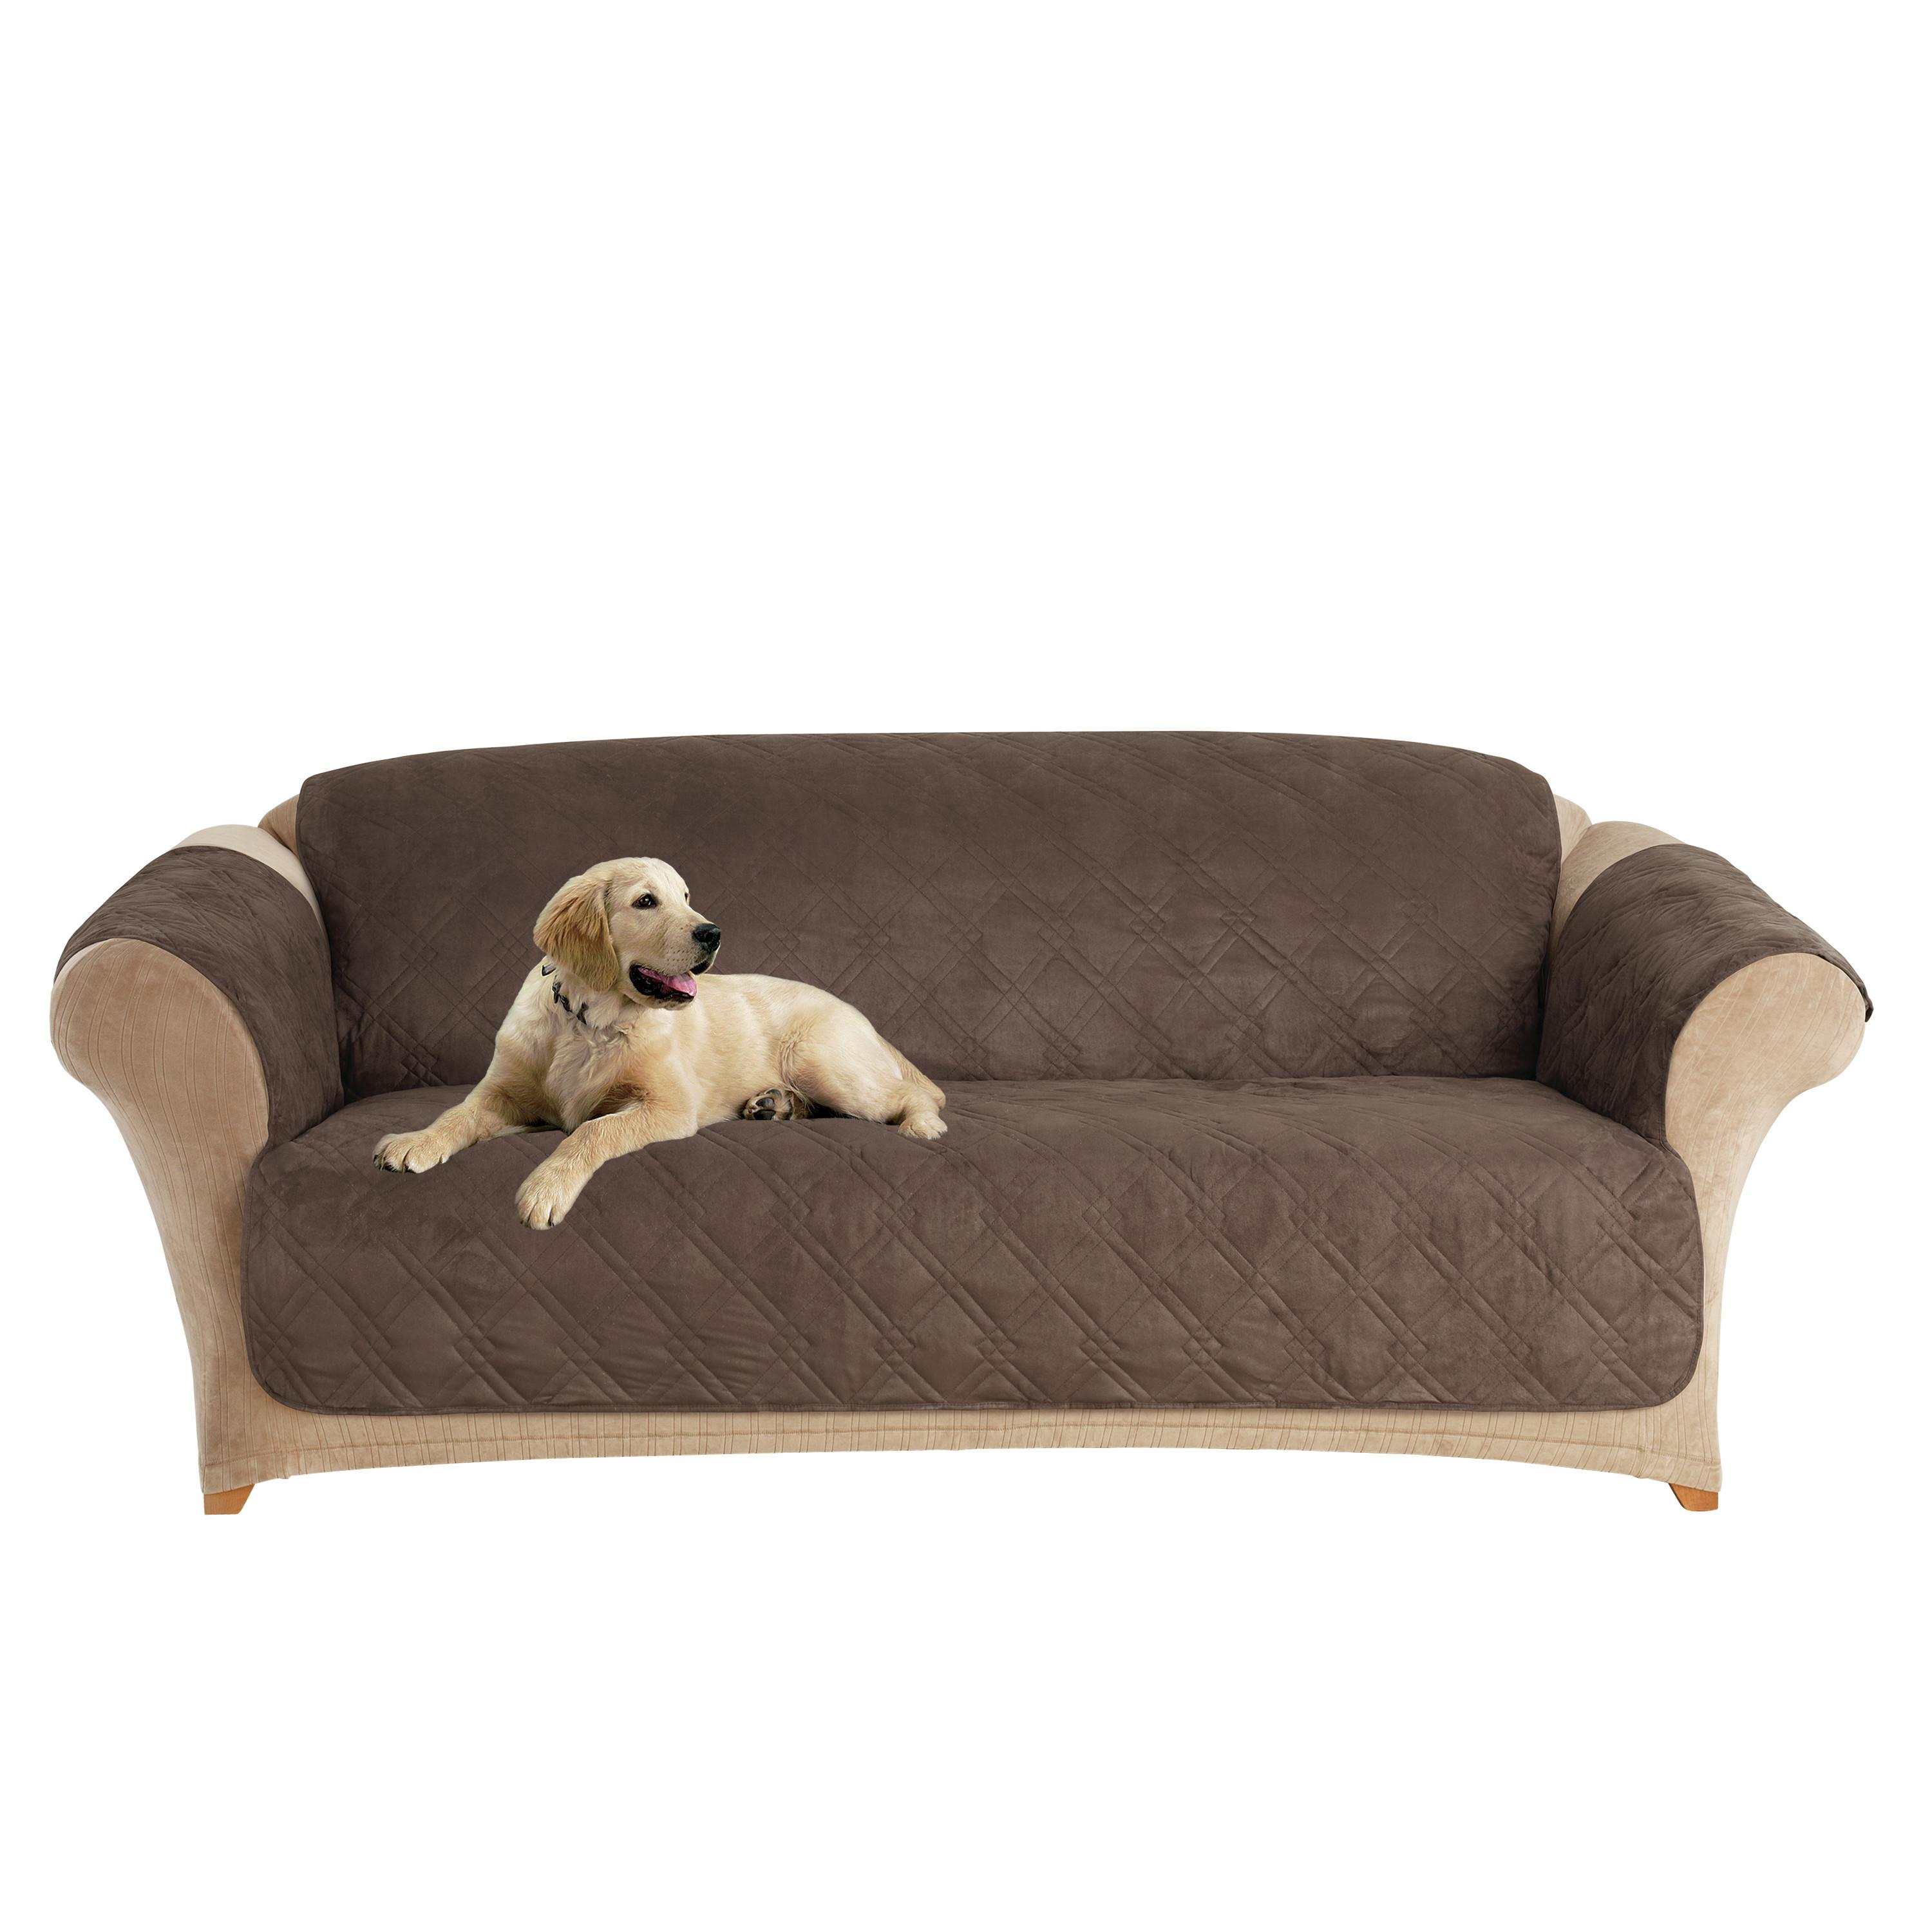 Pet Sofa Cover Stays Place